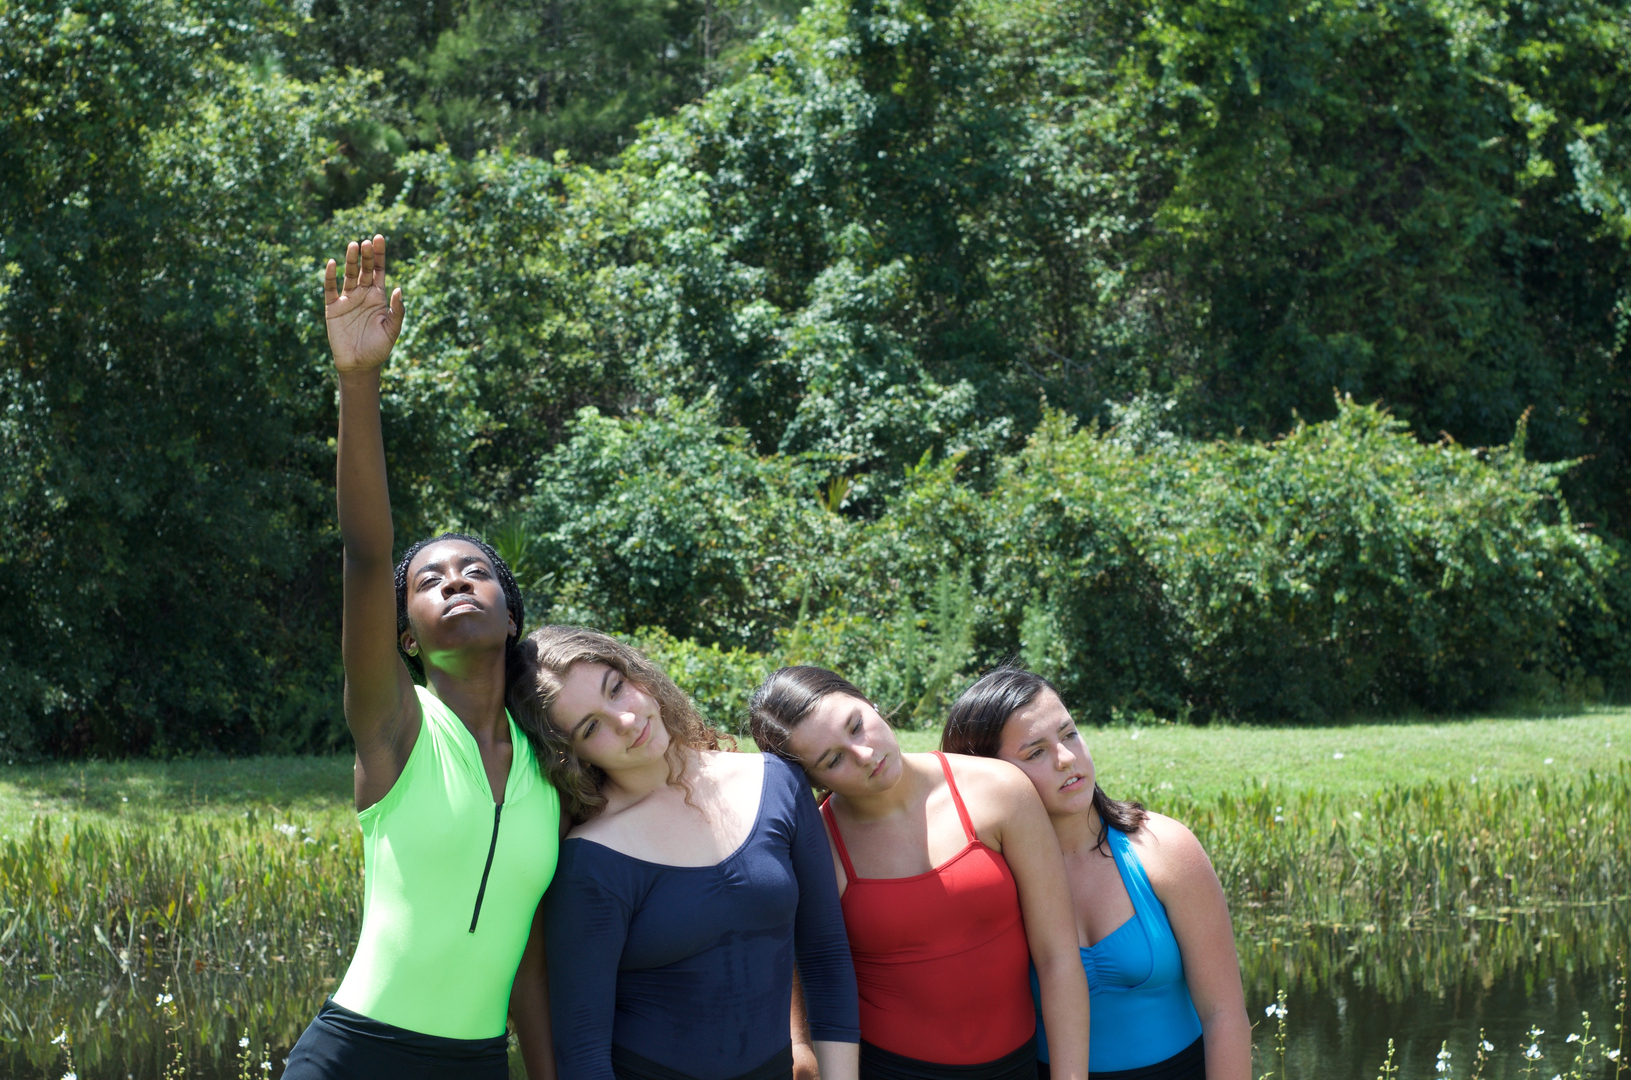 Our Mission - Collective Soles Youth Ensemble is a group of young pre-professional dance artists who strive to enrich and engage the Tampa Bay community through intensive training, performance, and service.